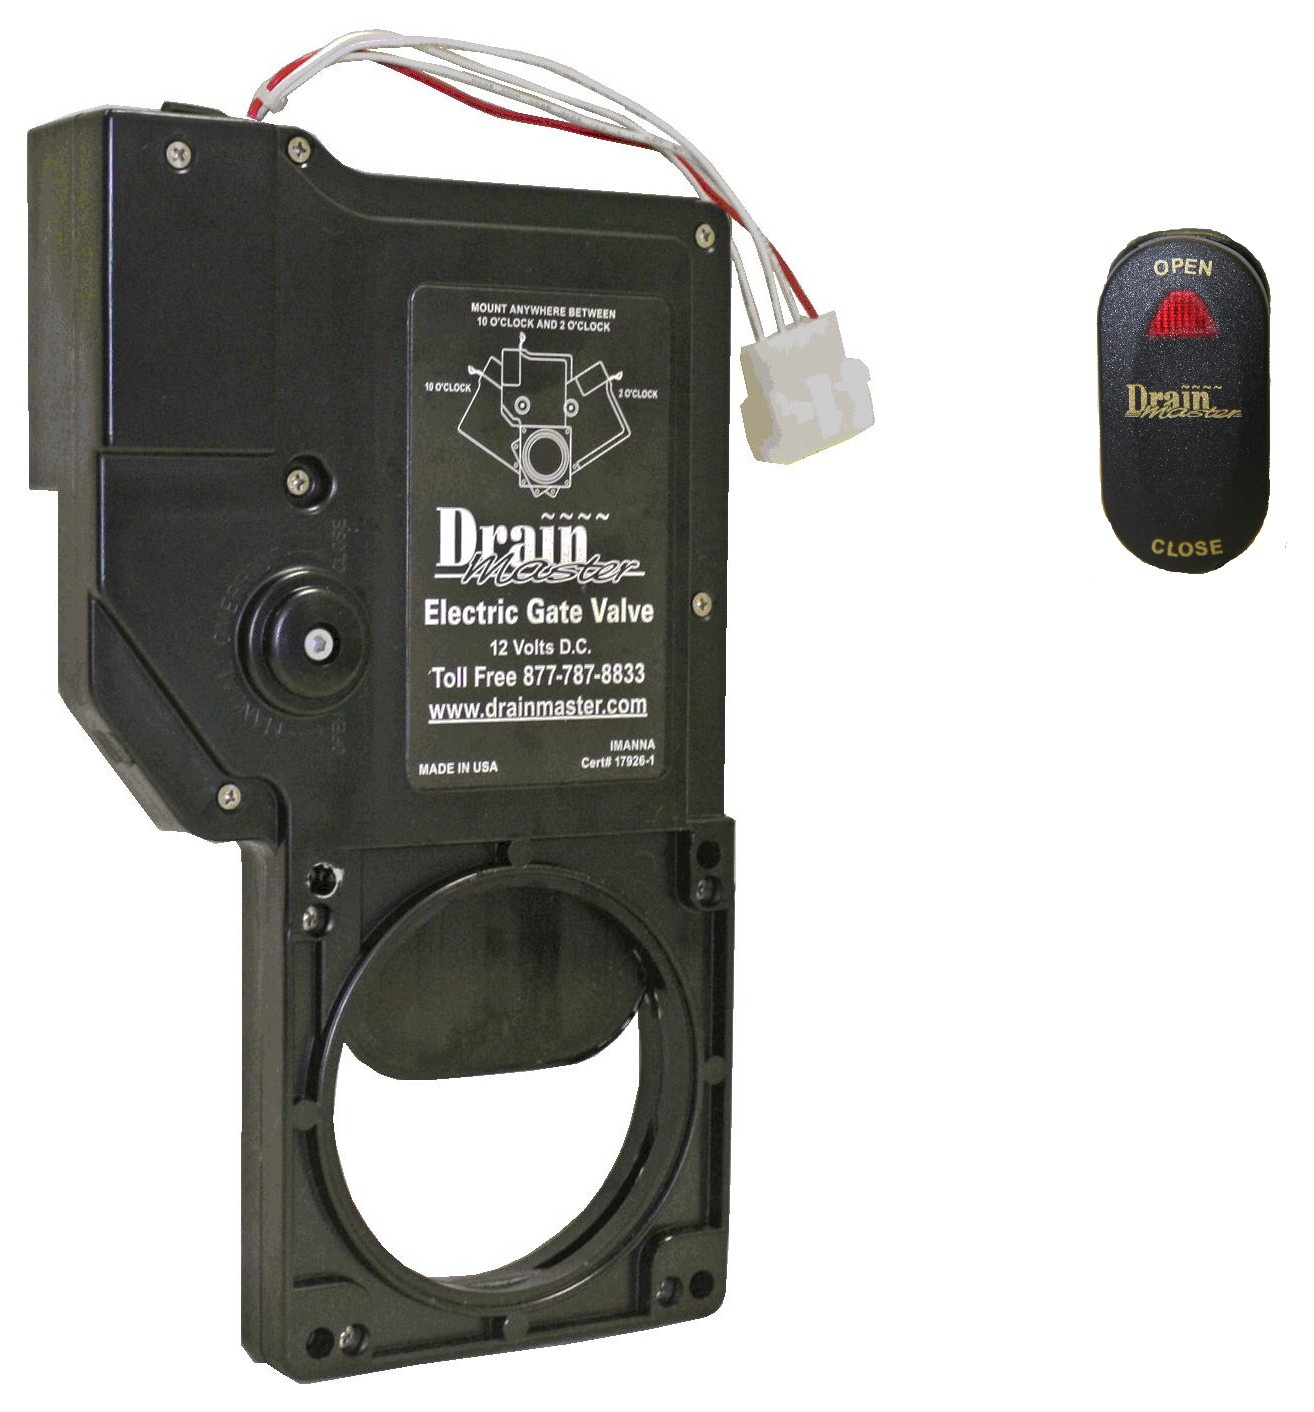 drain master rh drainmaster com Basic Electrical Schematic Diagrams Automotive Wiring Diagrams